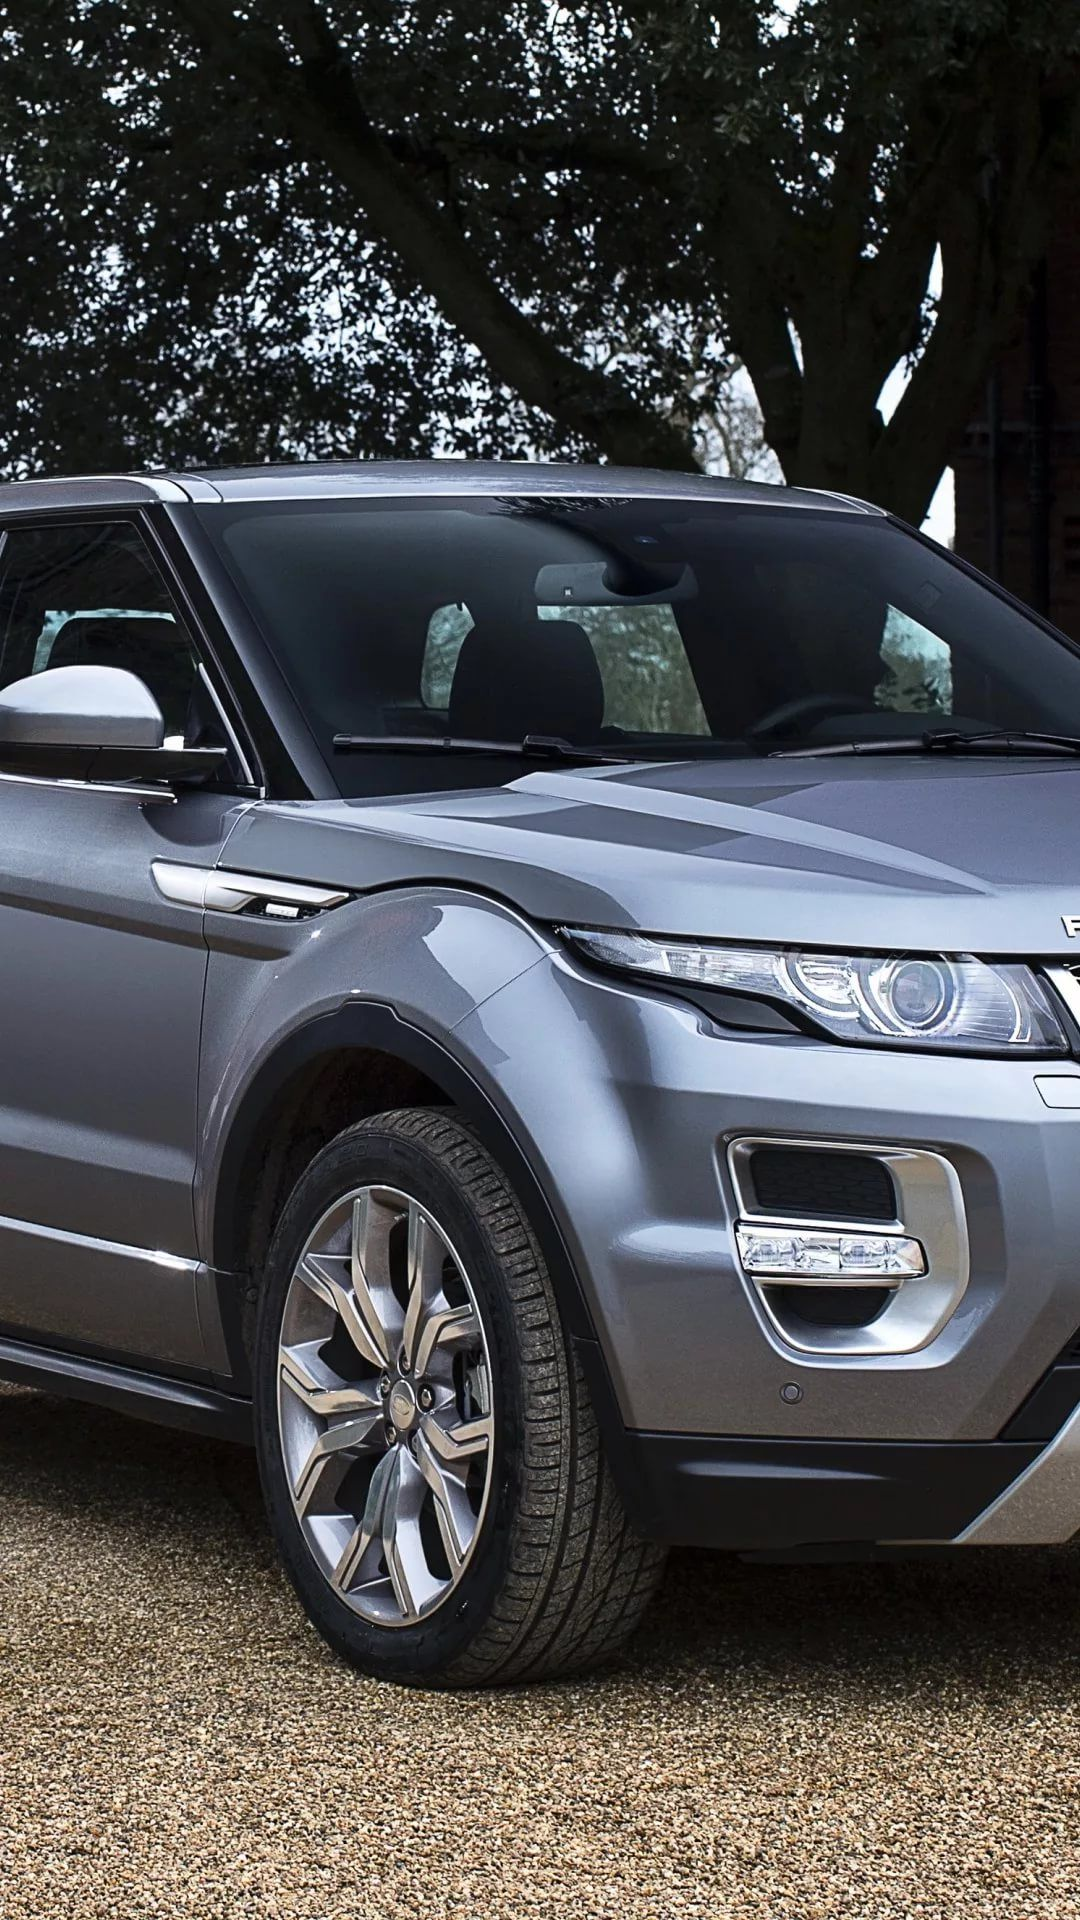 Range Rover HD wallpaper for mobile